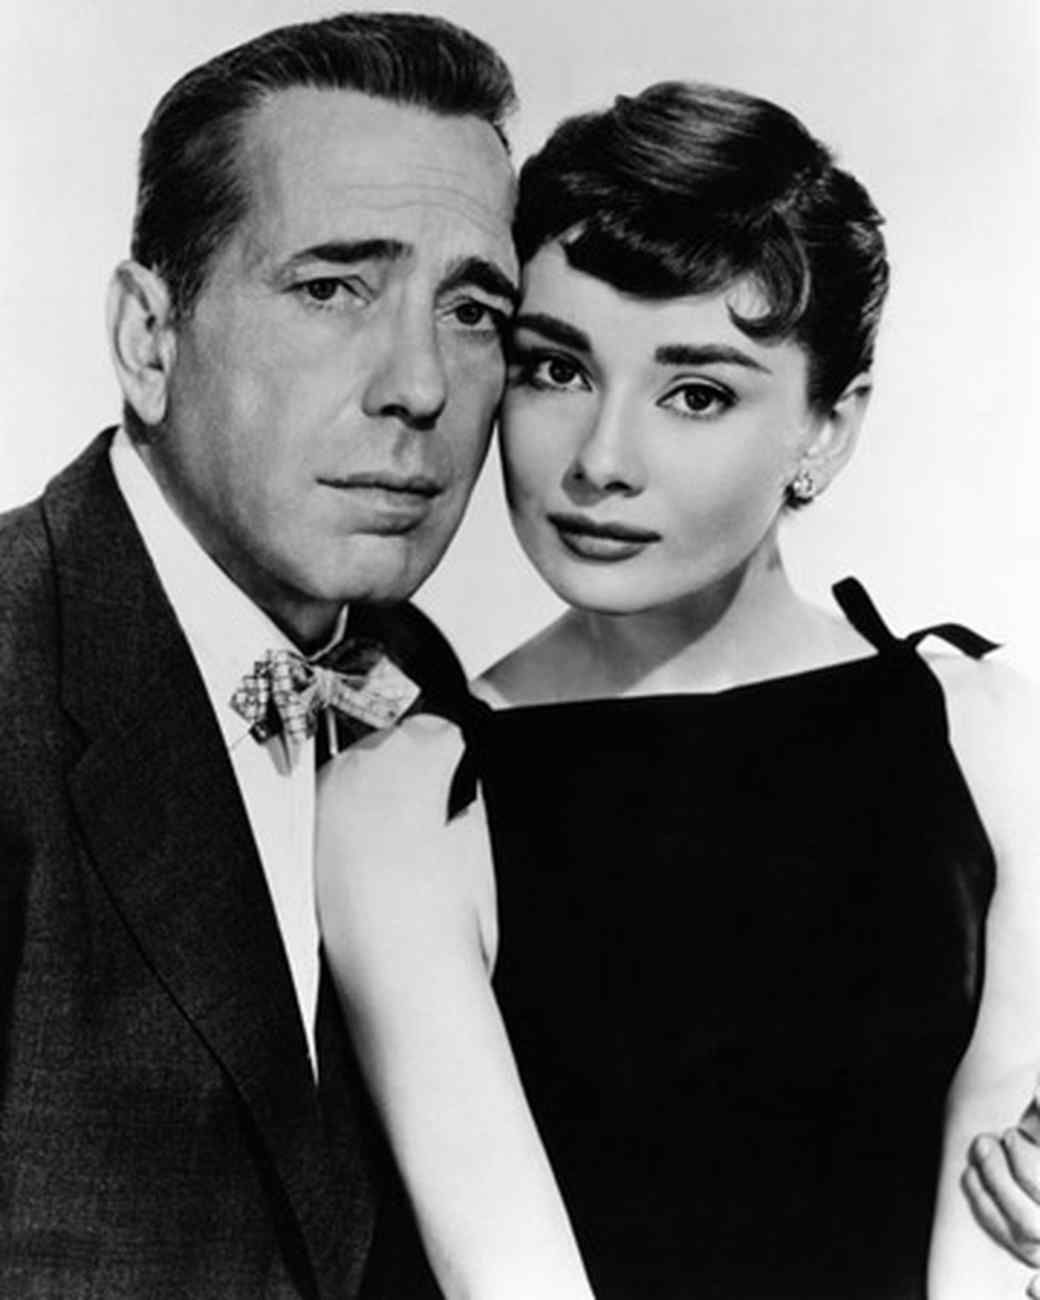 stock_movie_stills_sabrinahepburn_bogart.jpg